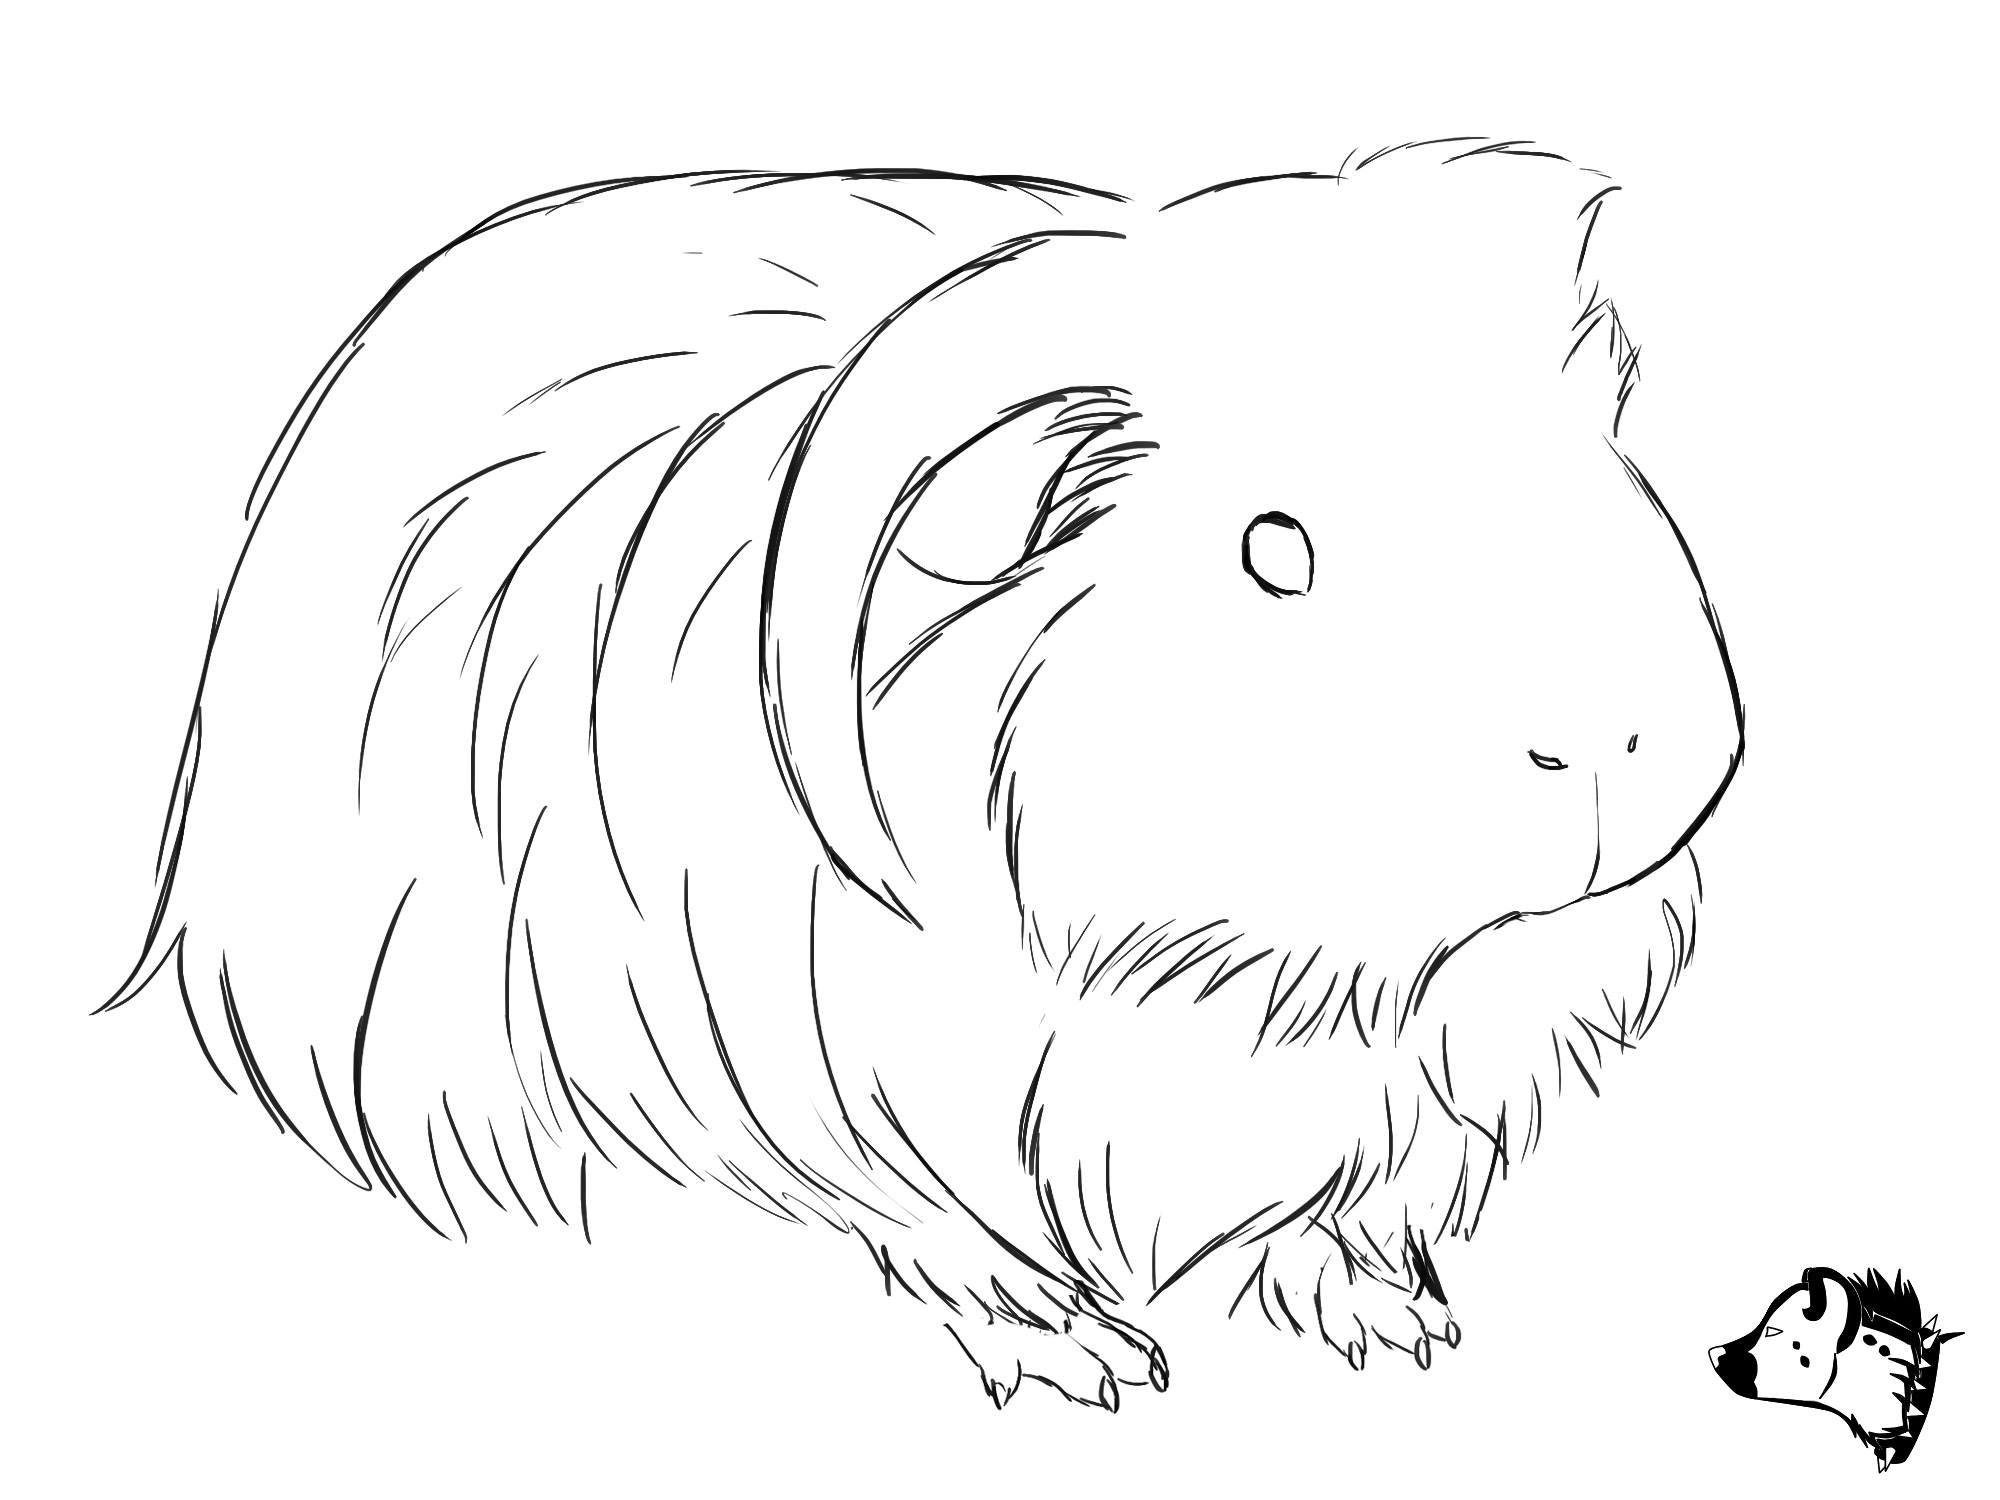 2000x1500 Sketch Drawing From Guineapig Town